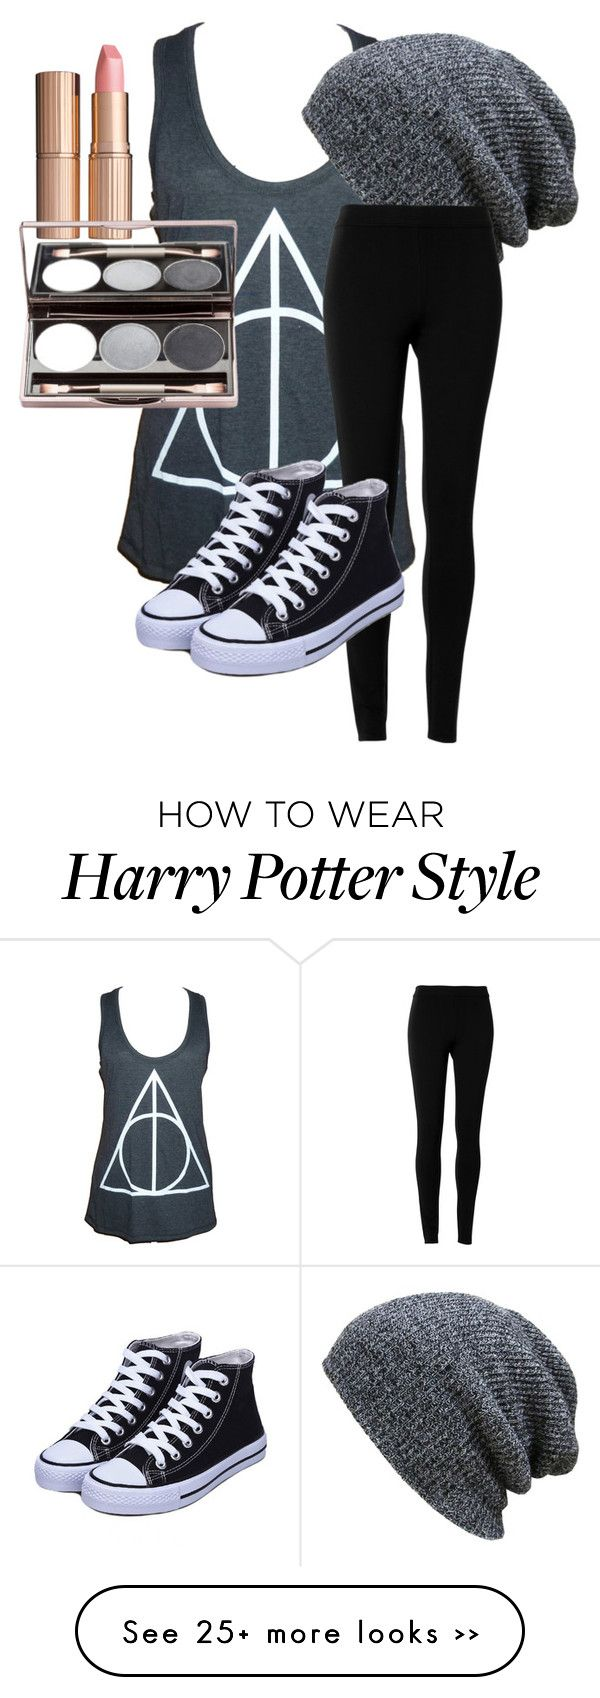 """Harry Potter outfit"" by awesomesauce922 on Polyvore featuring Max Studio and Charlotte Tilbury"